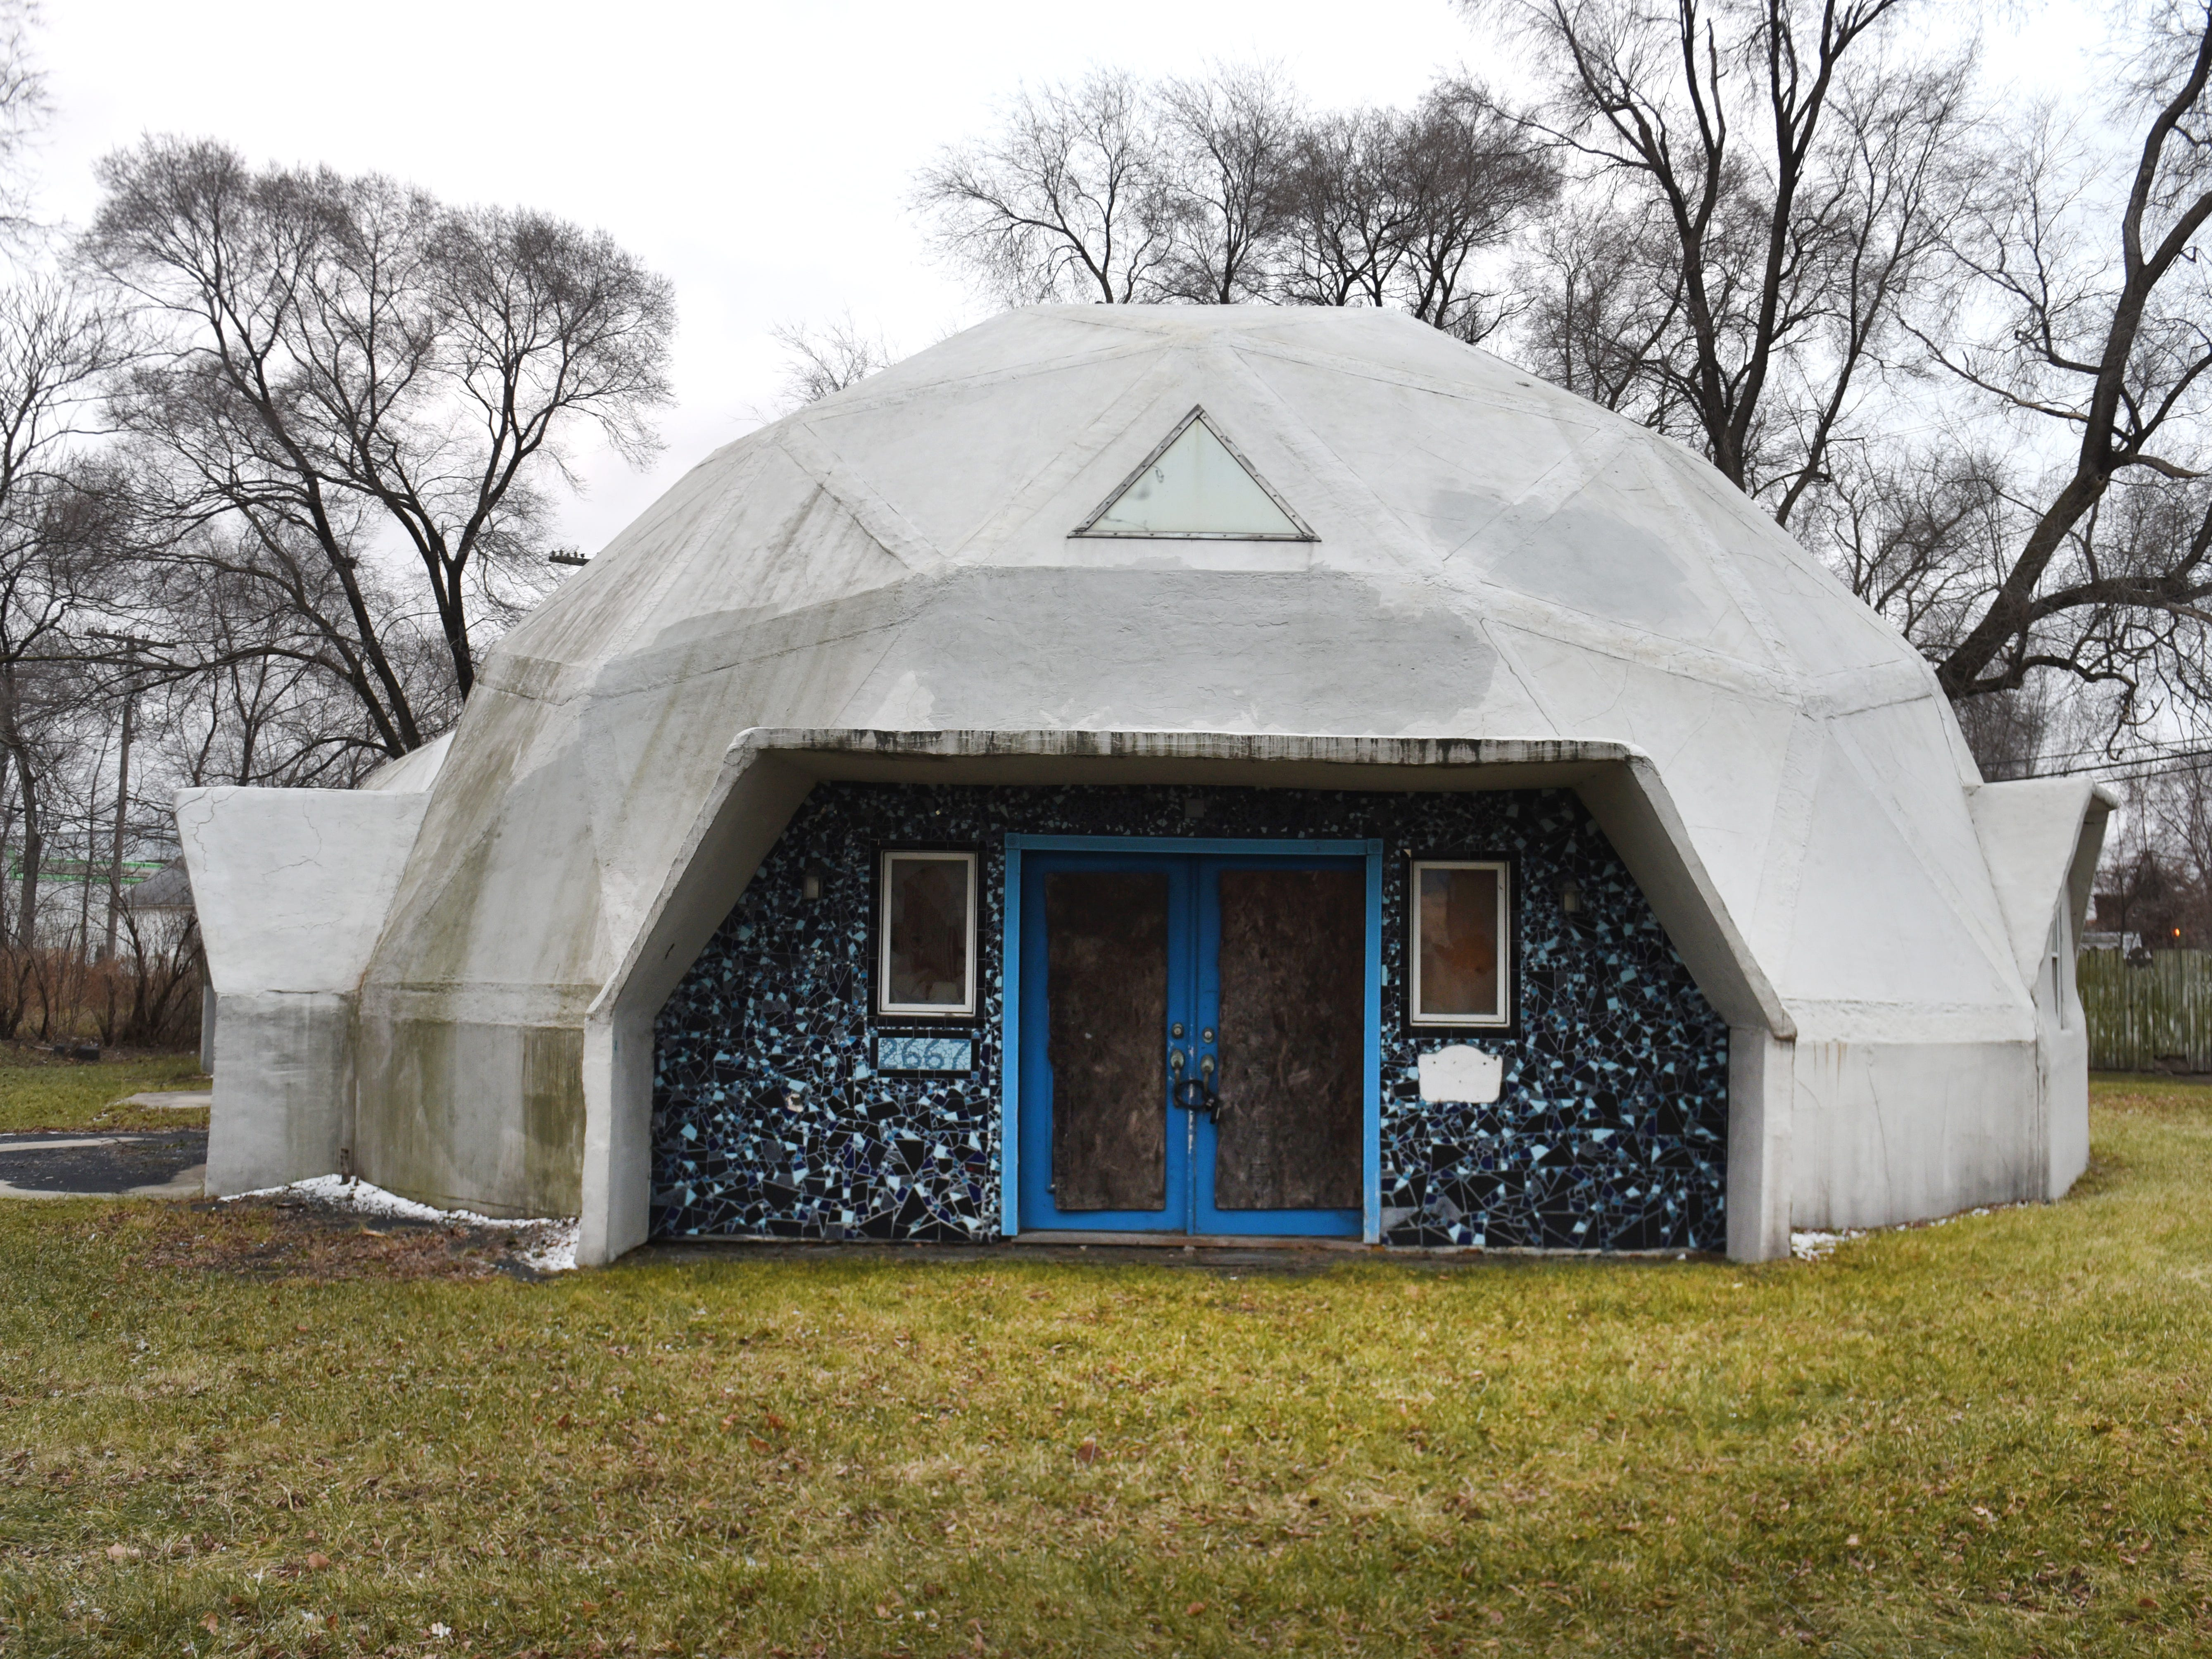 Geodesic dome home built by Jack White's brother sold